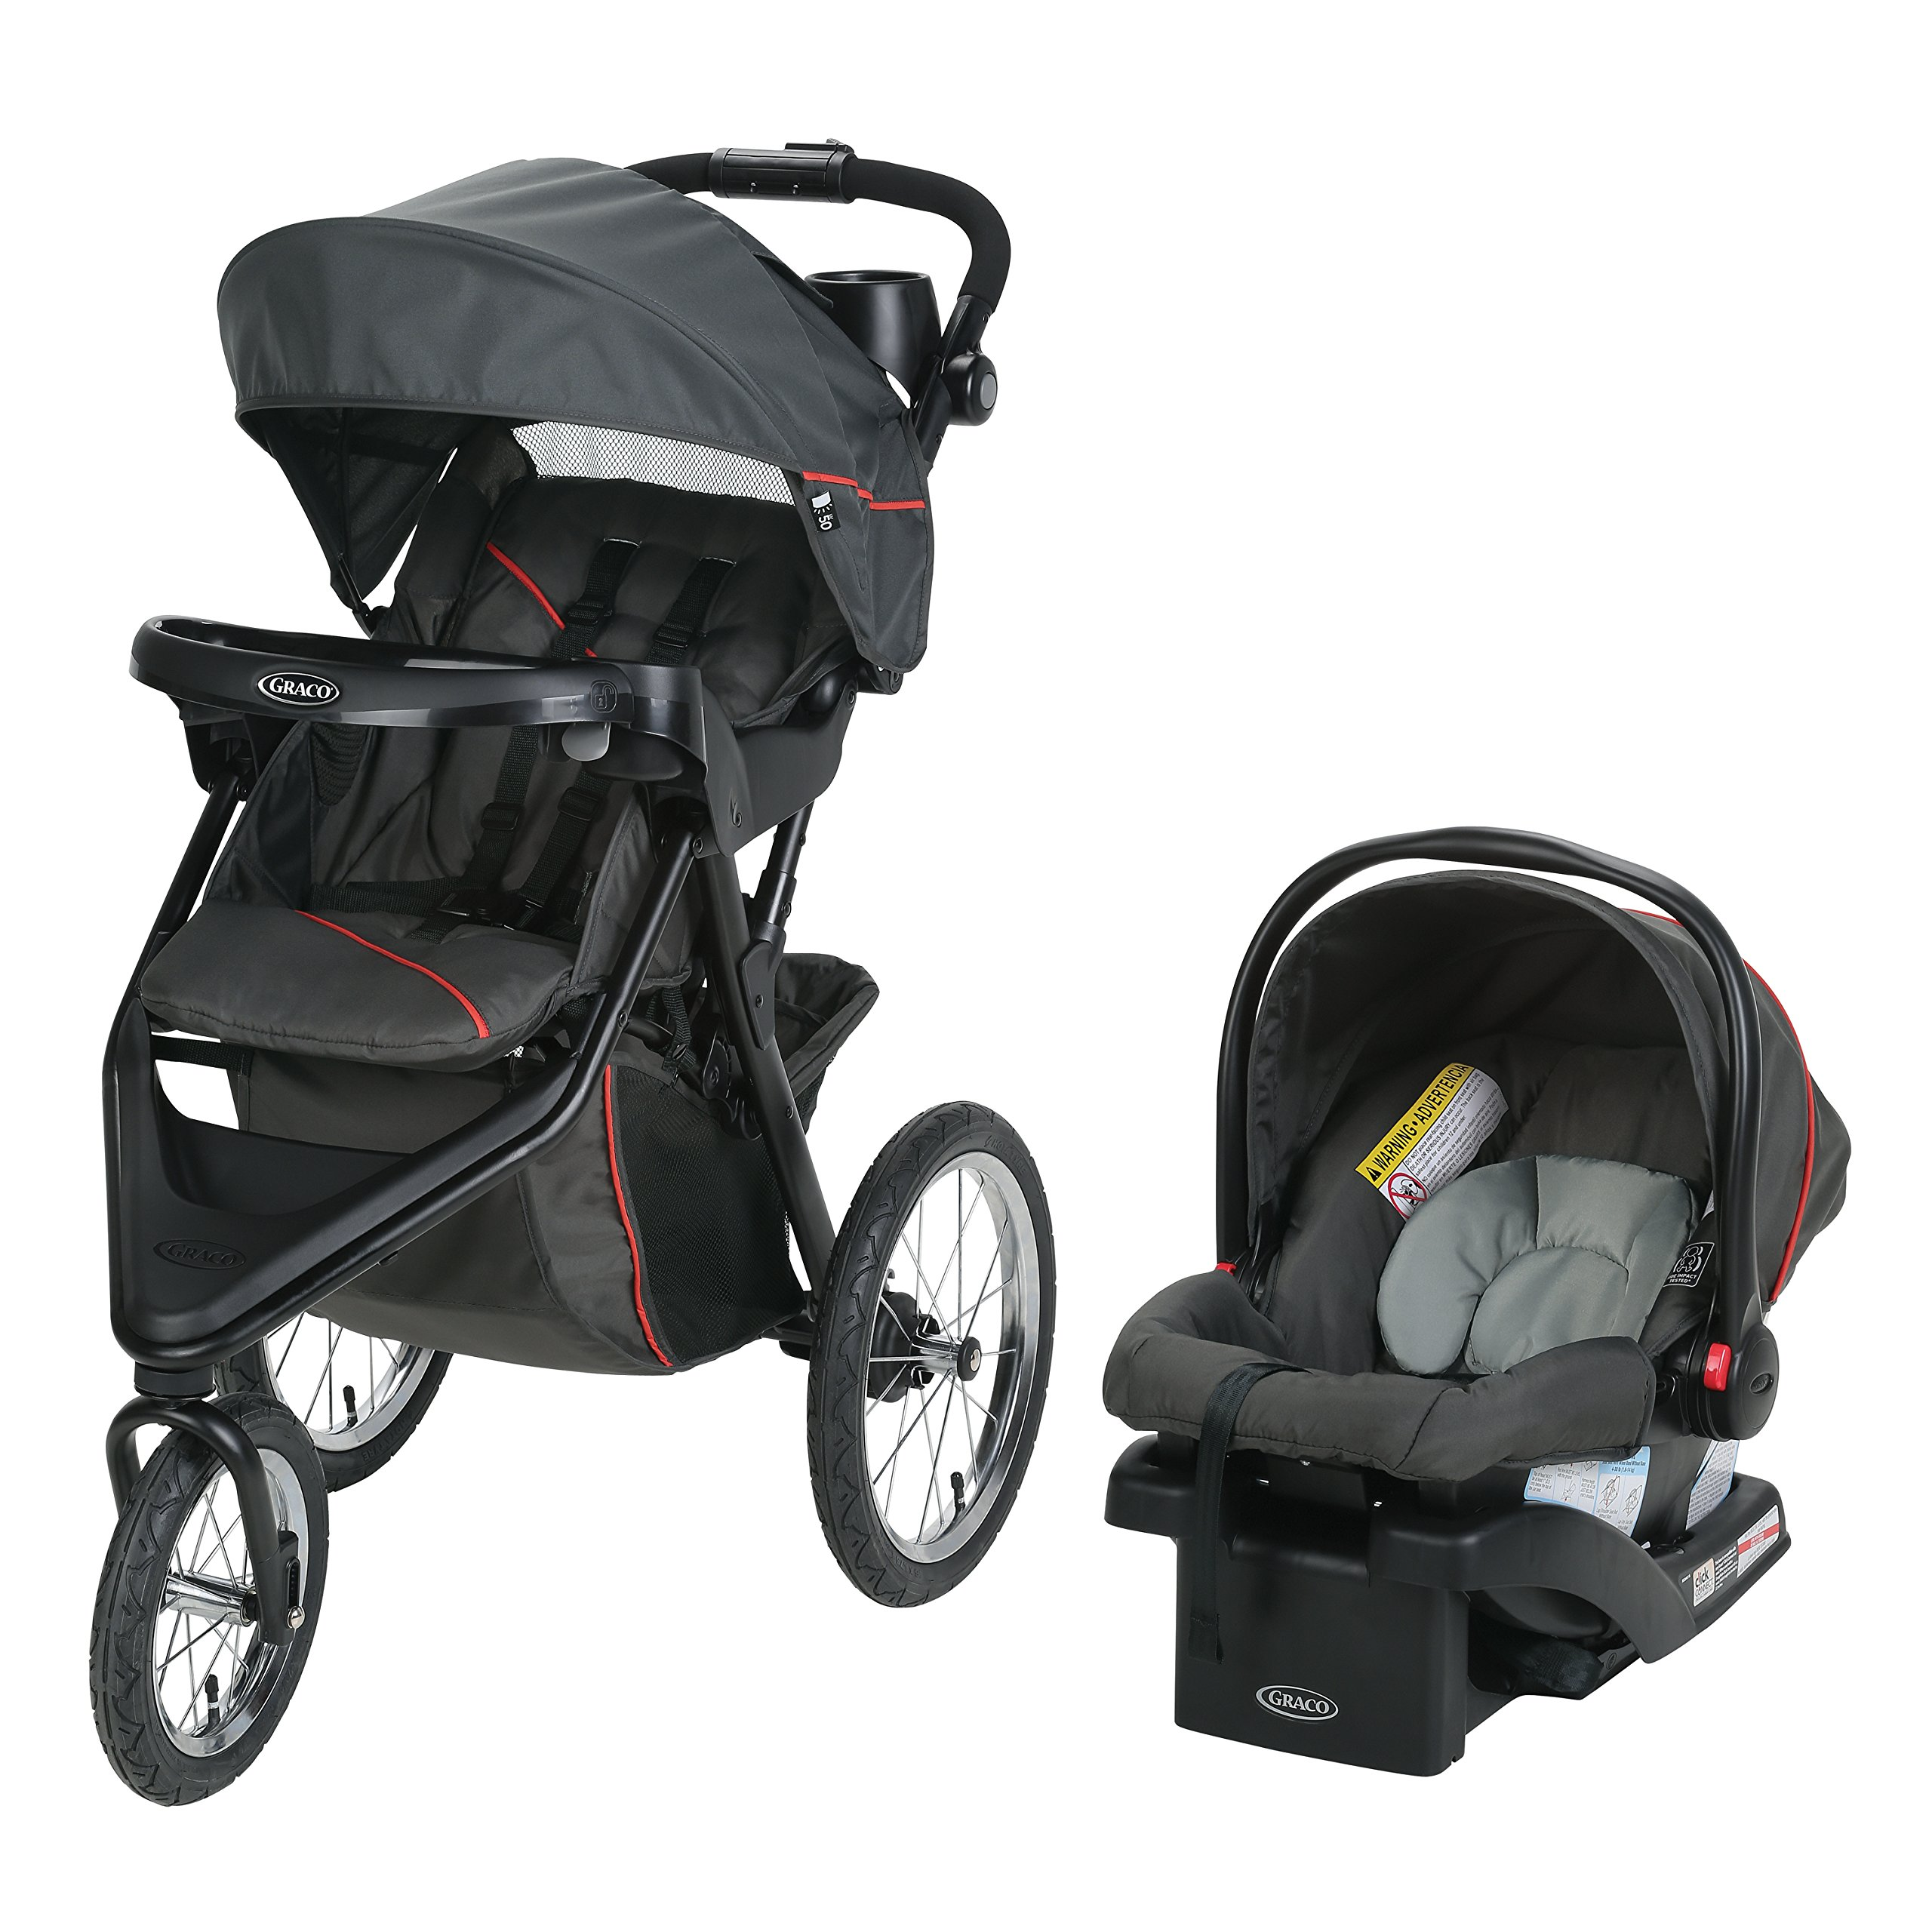 Graco Trax Jogger Travel System | Includes Trax Jogging Stroller and SnugRide 30 Infant Car Seat, Evanston by Graco